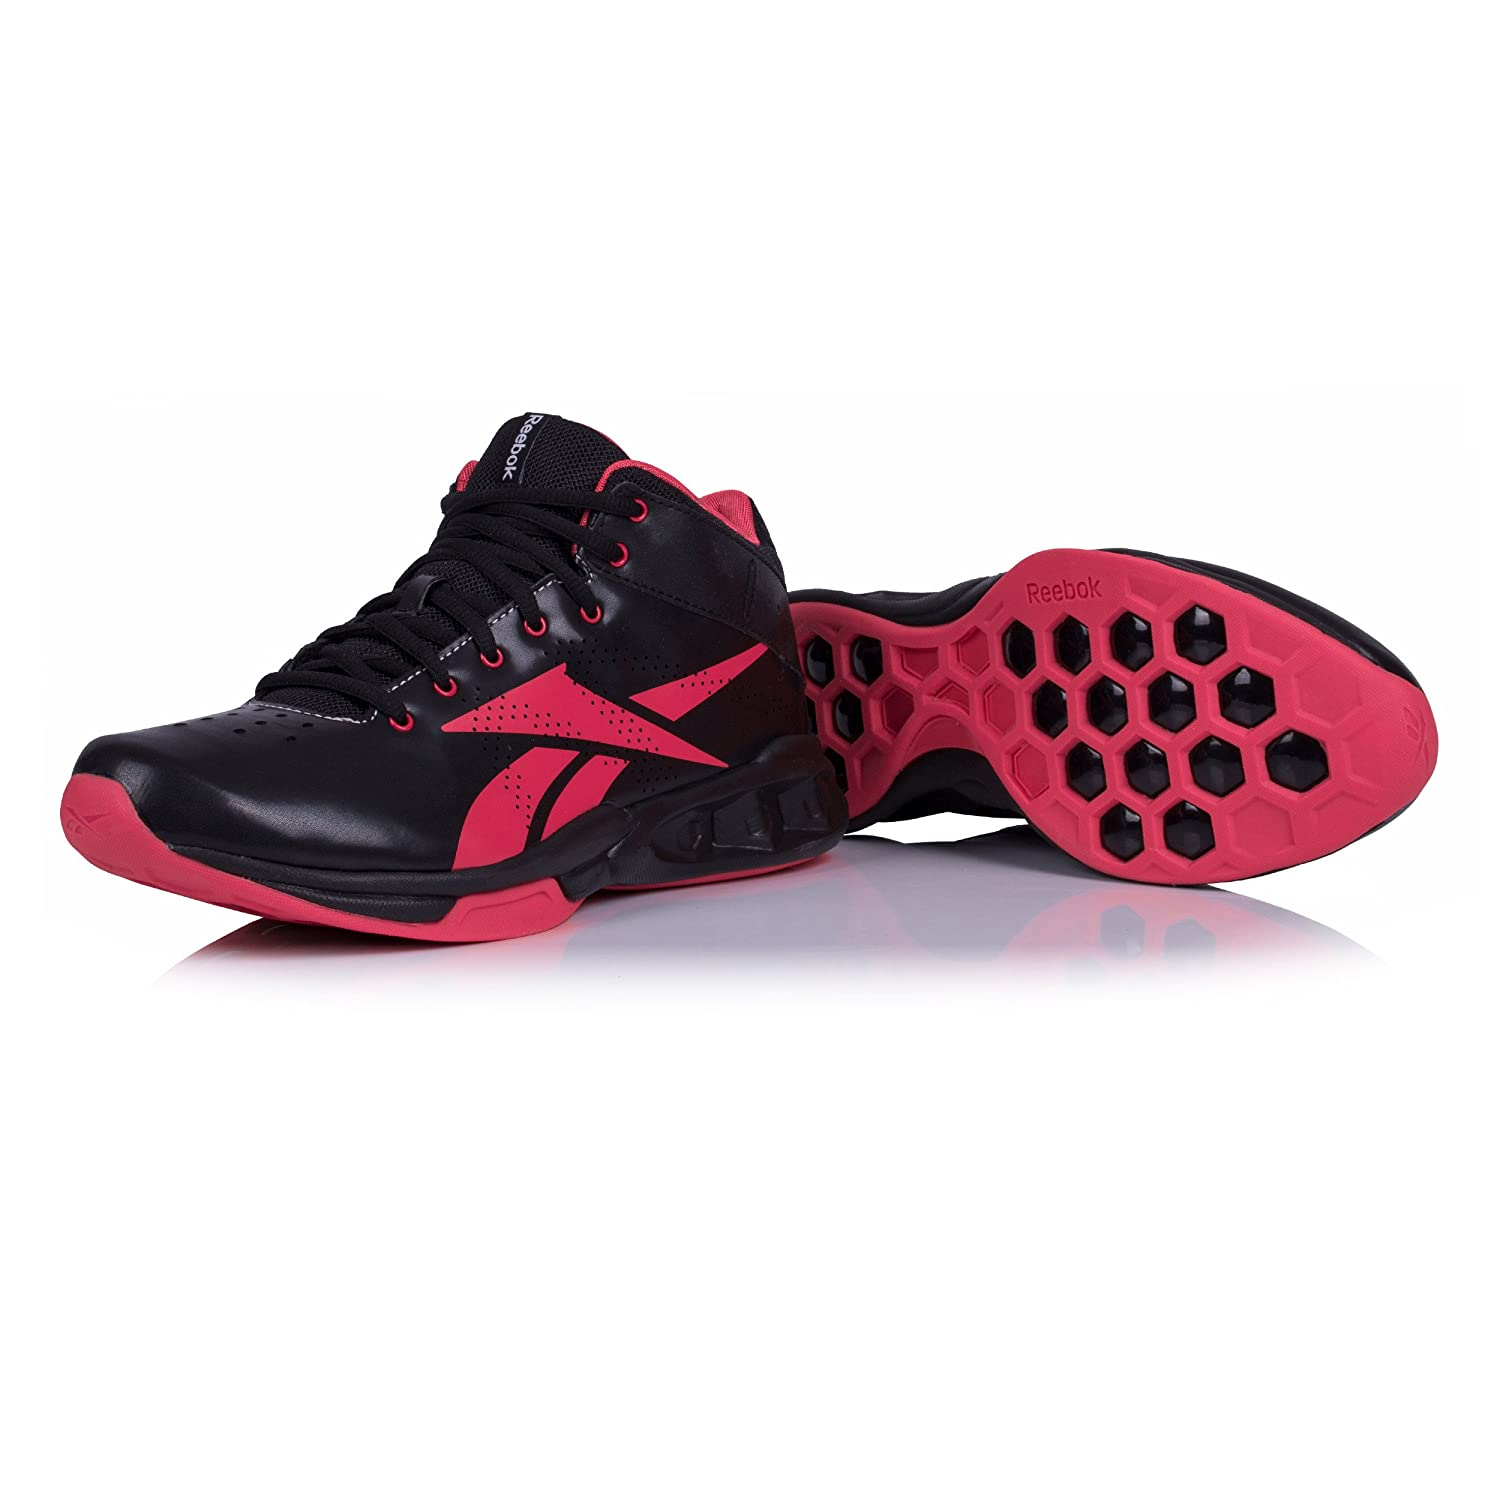 83dcdb3e2824 Reebok Hexride Intensity Women s Mid Training Shoe Black  Amazon.co.uk   Shoes   Bags